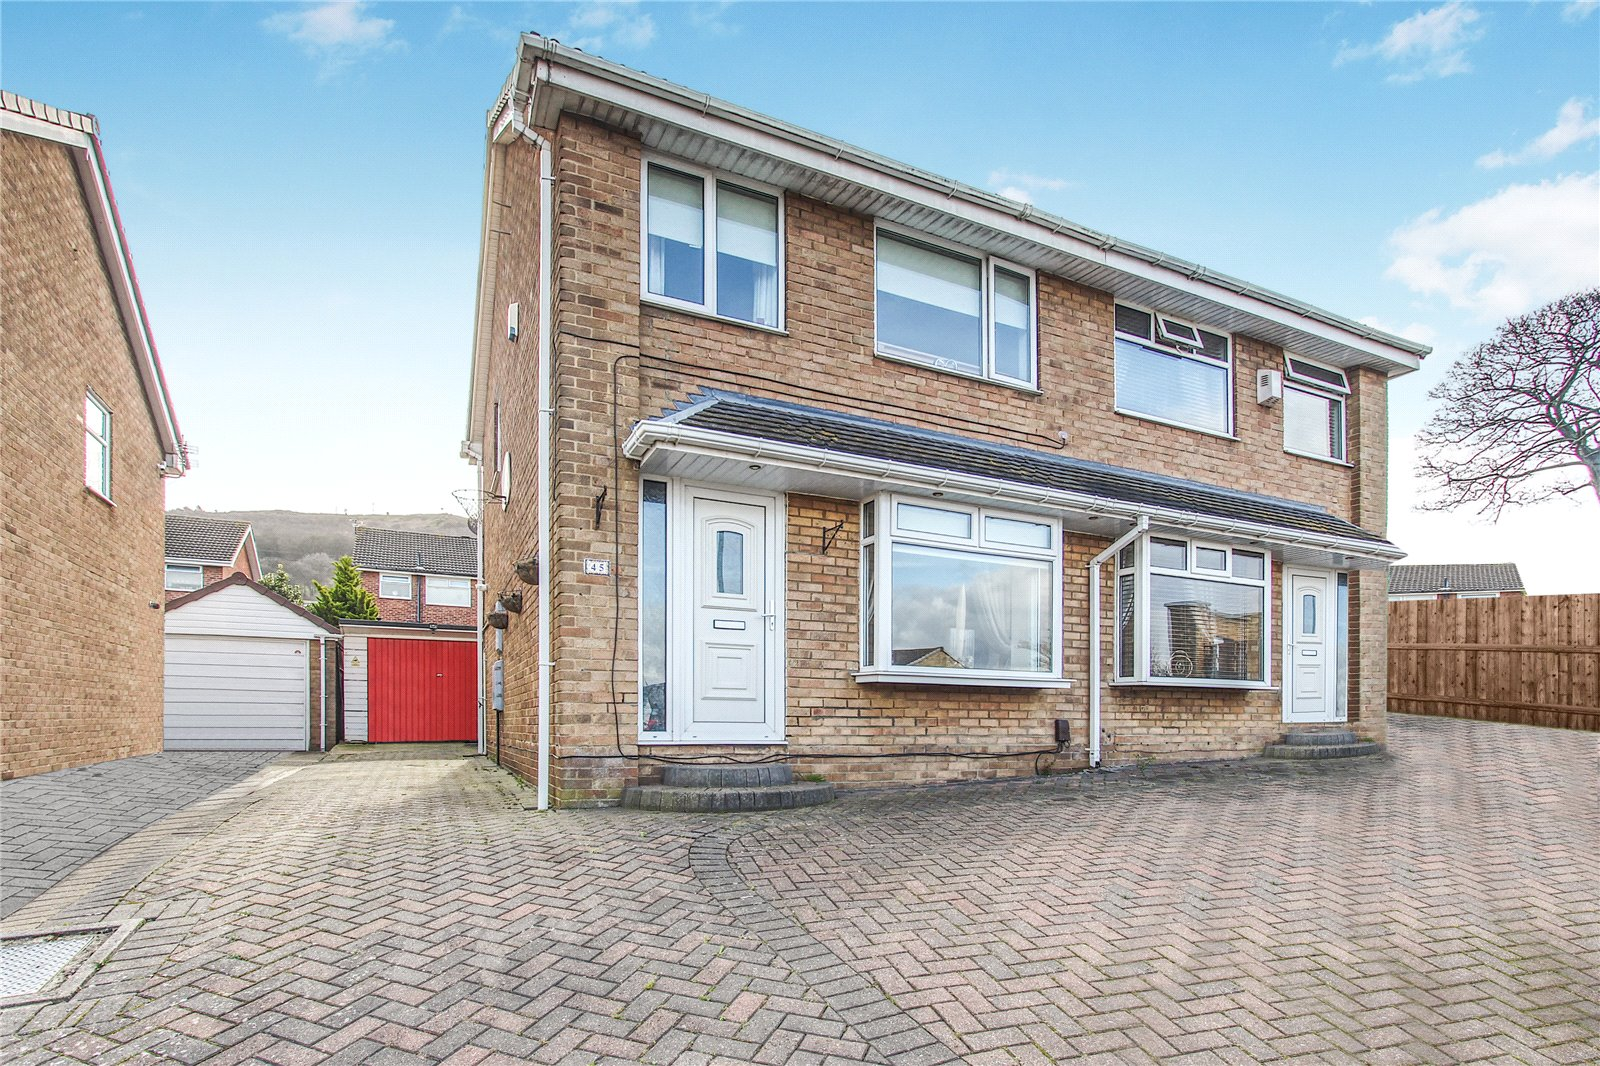 3 bed house for sale in Meadowgate, Eston 1